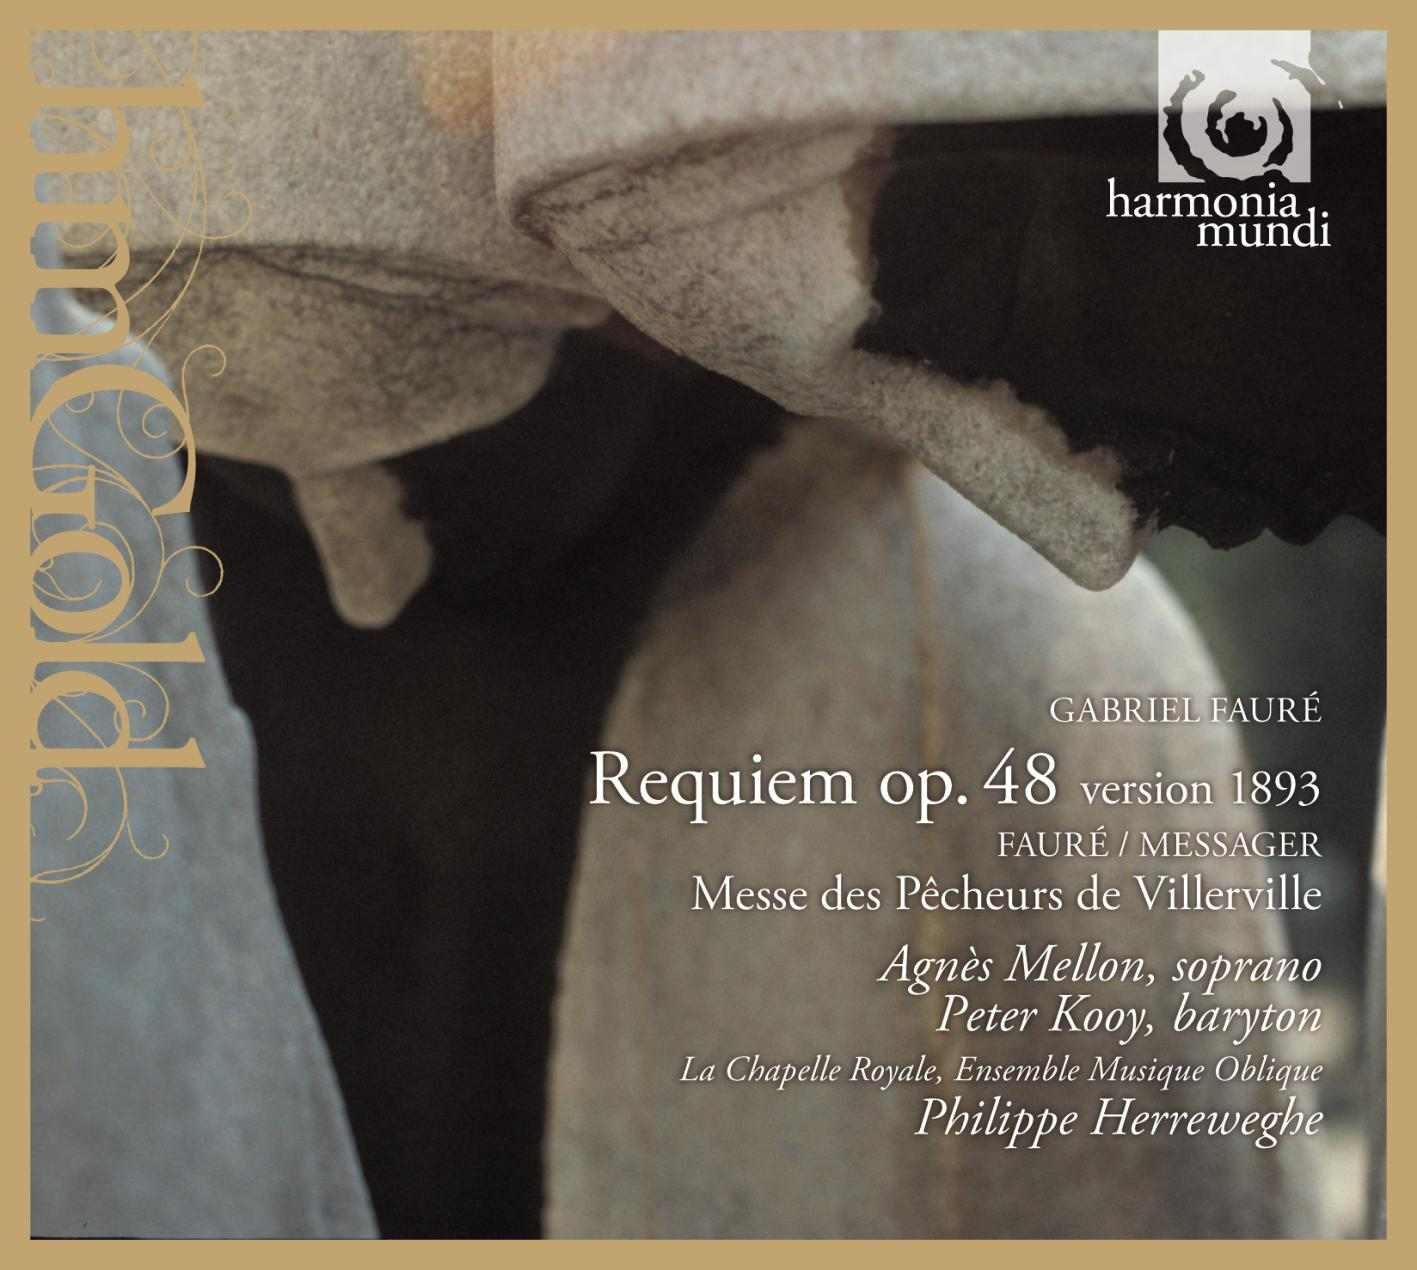 Requiem, op. 48 / Gabriel Fauré, André Messager, comp. |